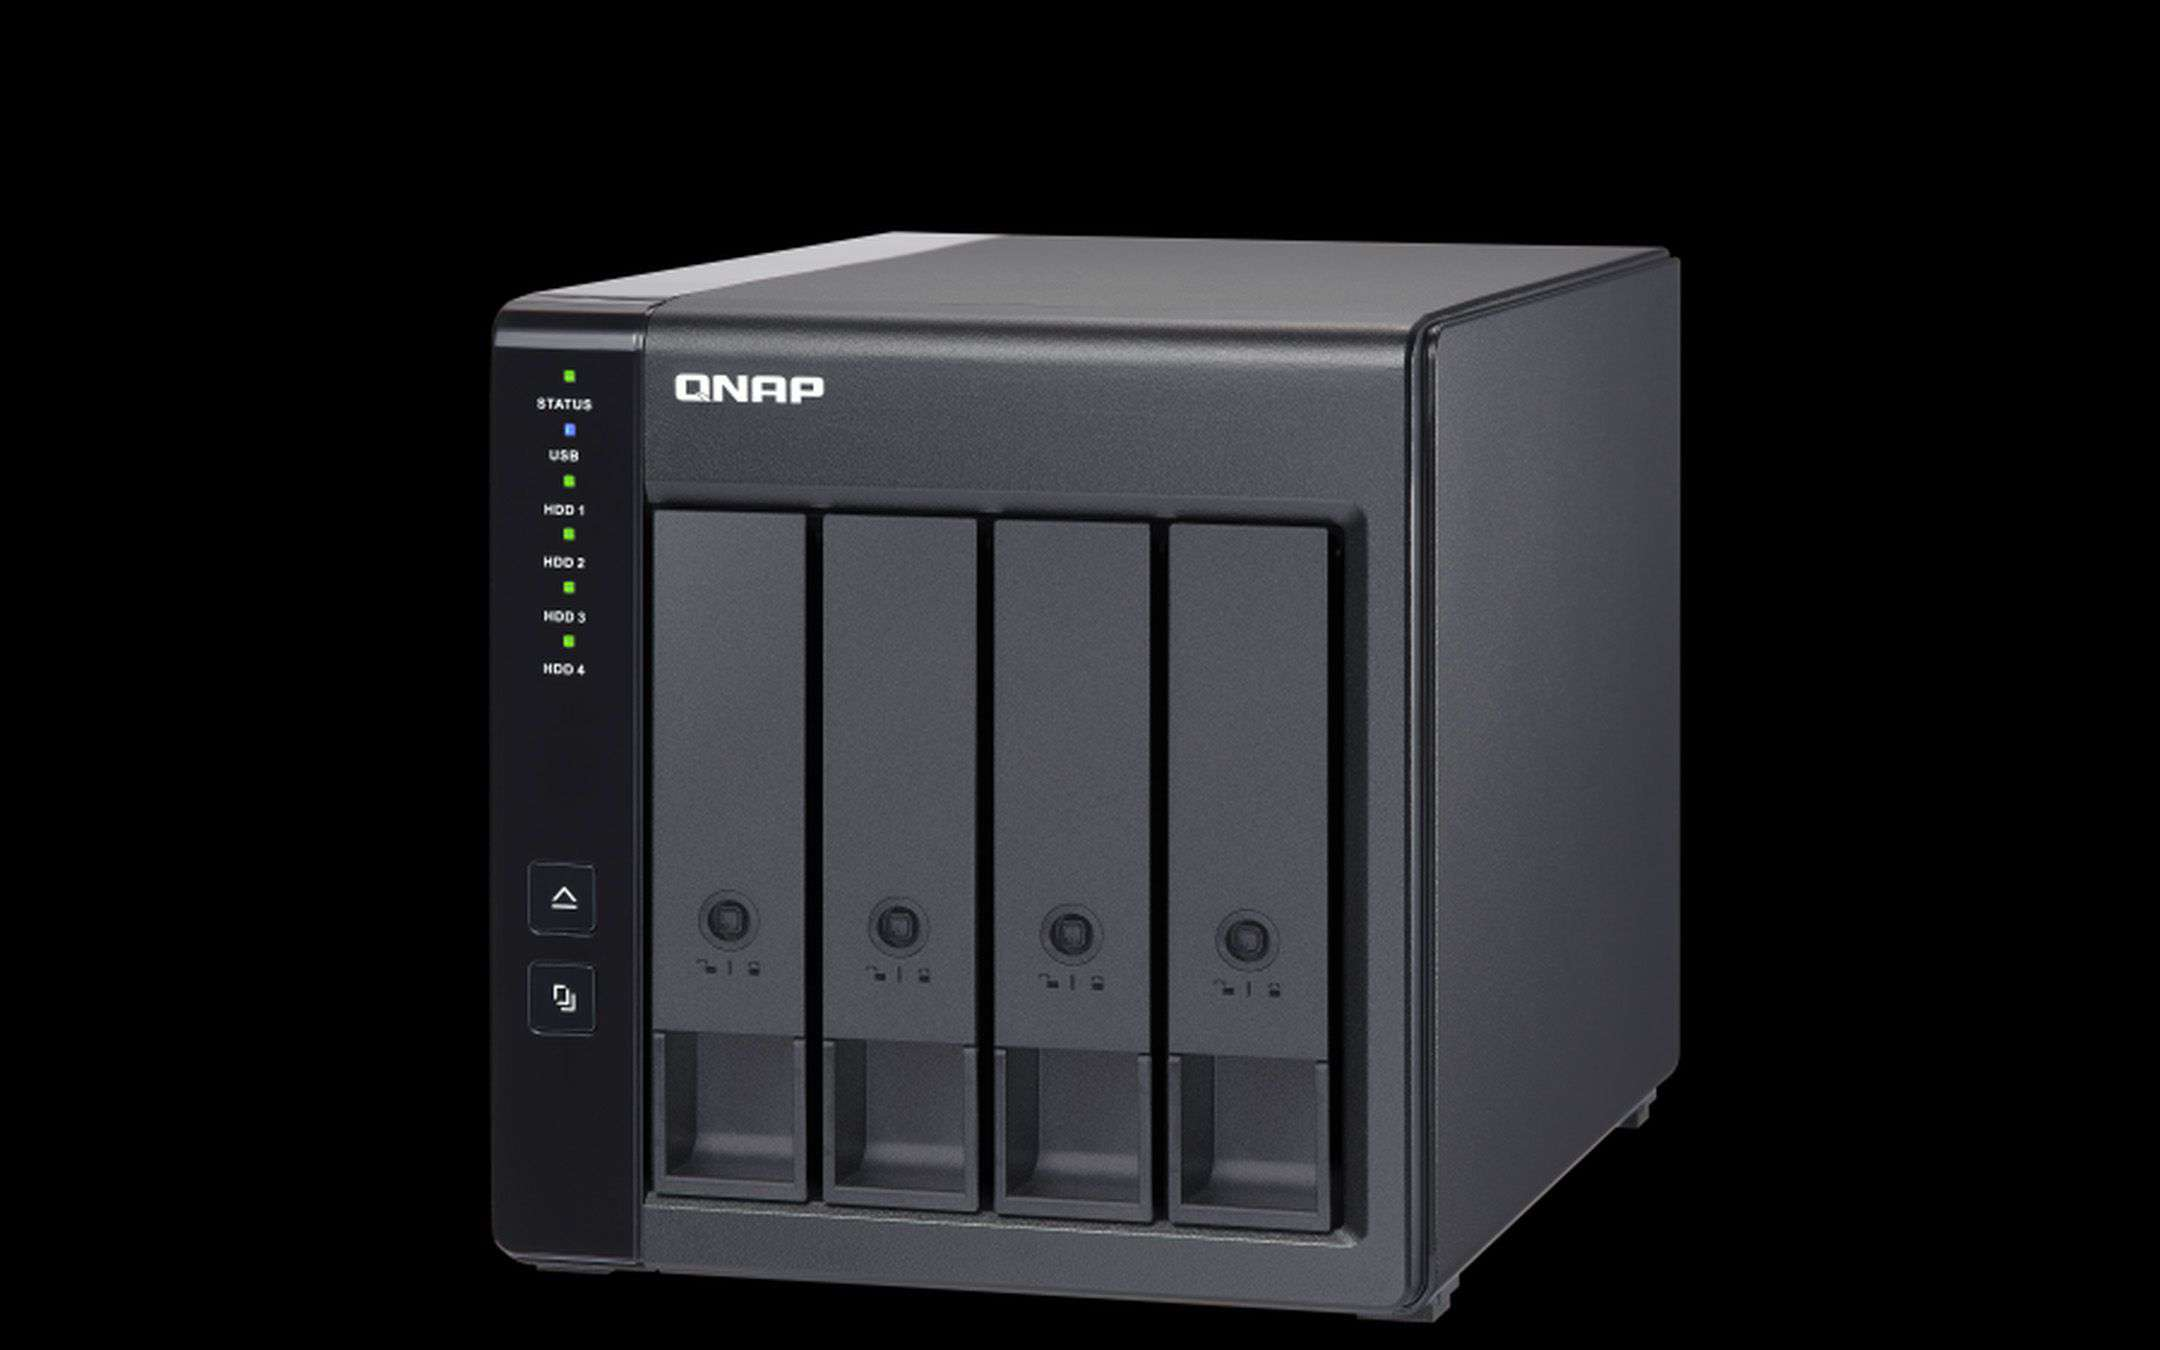 QNAP NAS, how to avoid Dovecat cryptominer